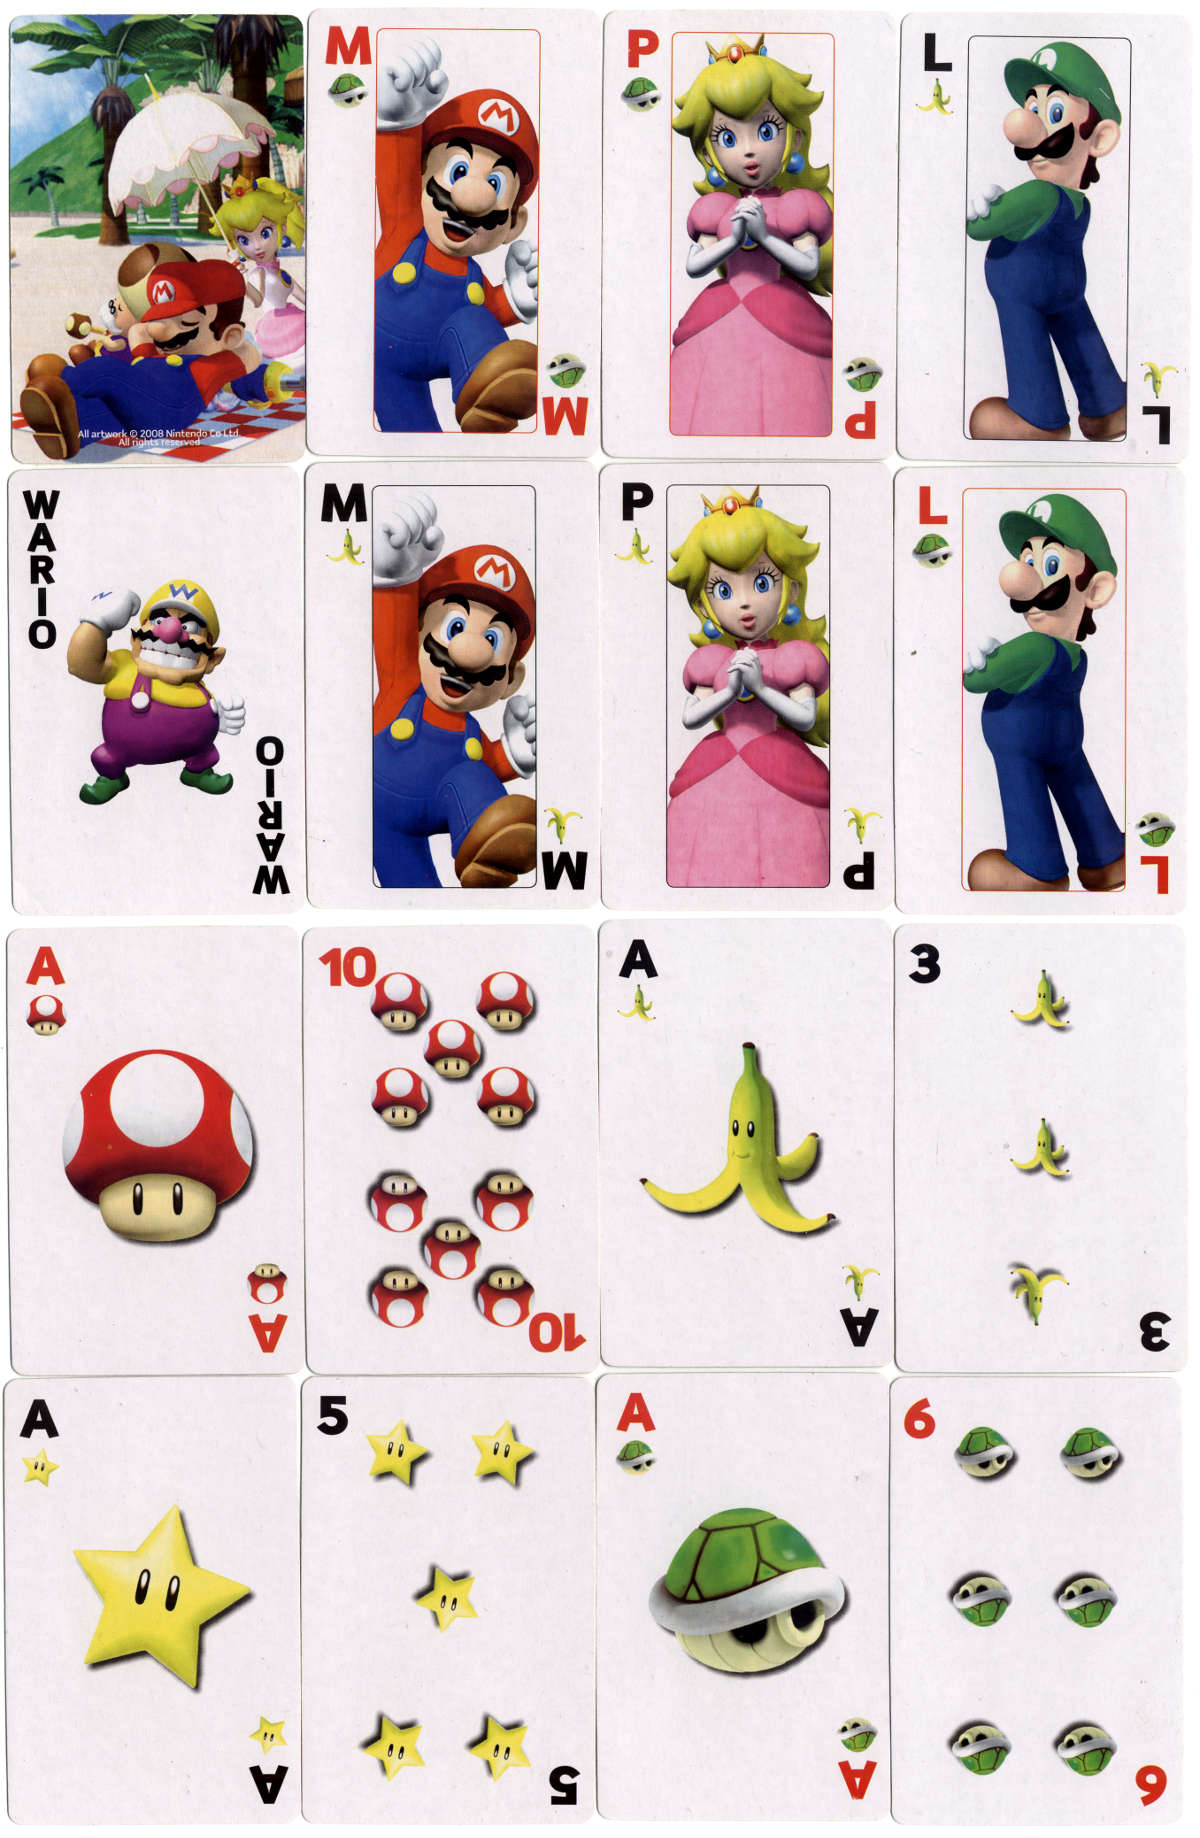 Nintendo's Mario-Wario Playing Cards. All artwork ©2008 Nintendo Co., Ltd